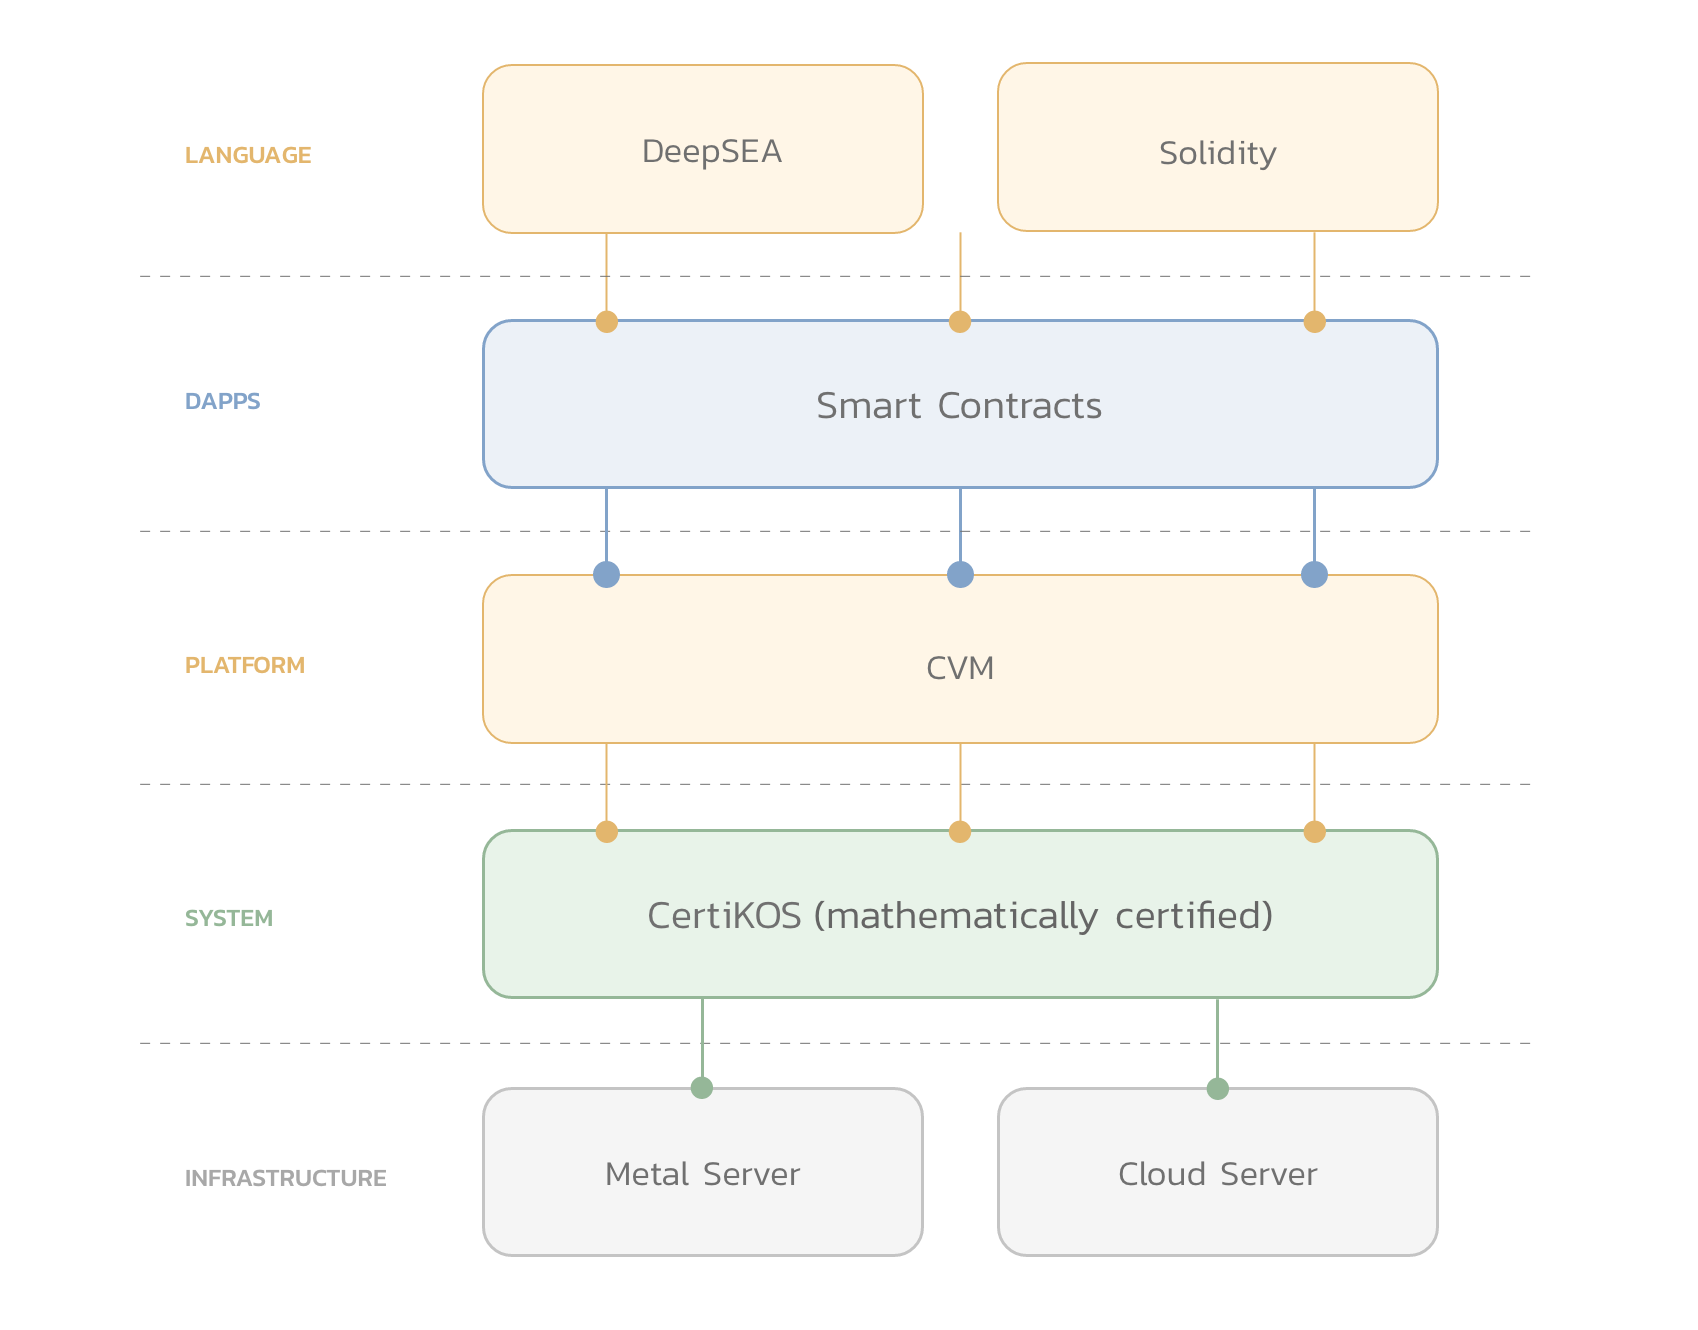 Diagram of CertiK Chain tech stack, starting with the Language layer at the top (containing DeepSEA + Solidity), DApps layer (smart contracts), Platform (CVM), System (CertiKOS), and Infrastructure (Metal Server + Cloud Server)